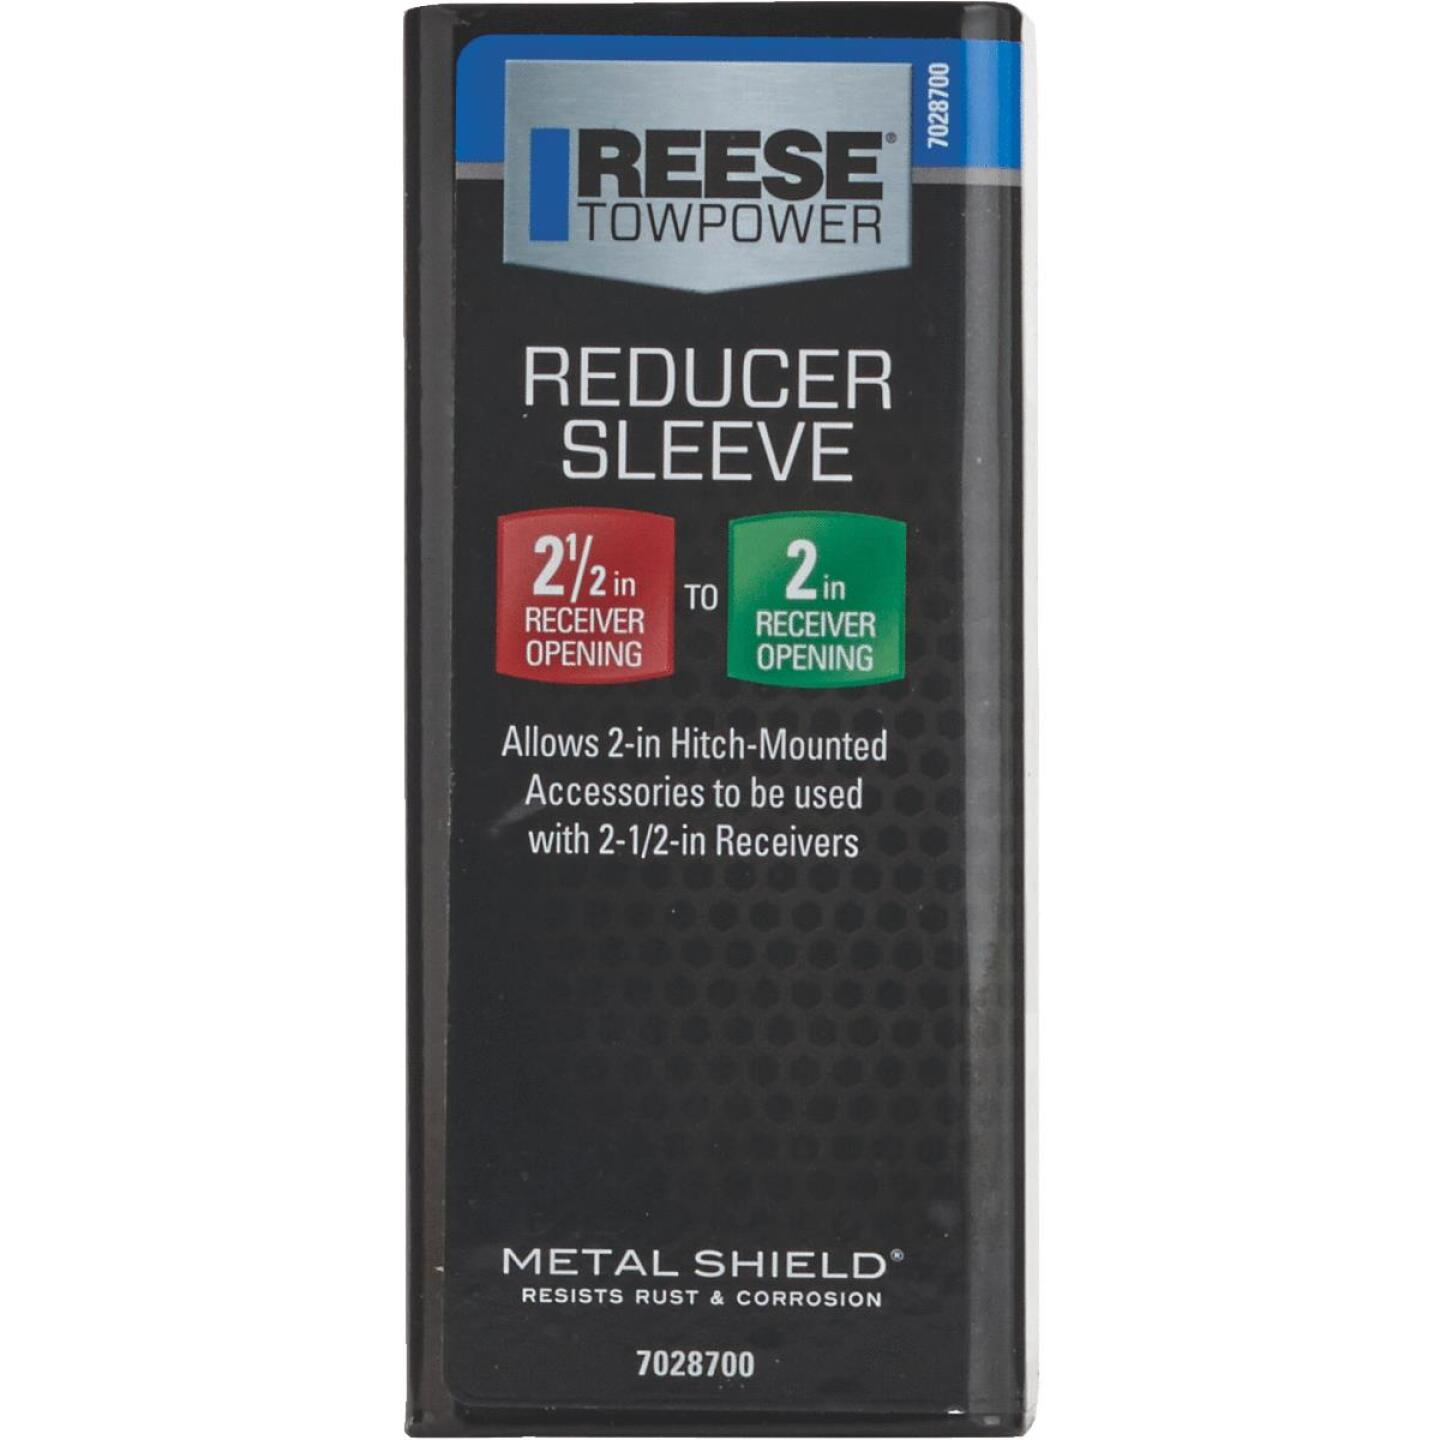 Reese Towpower Reducer Sleeve Receiver Adapter Image 1